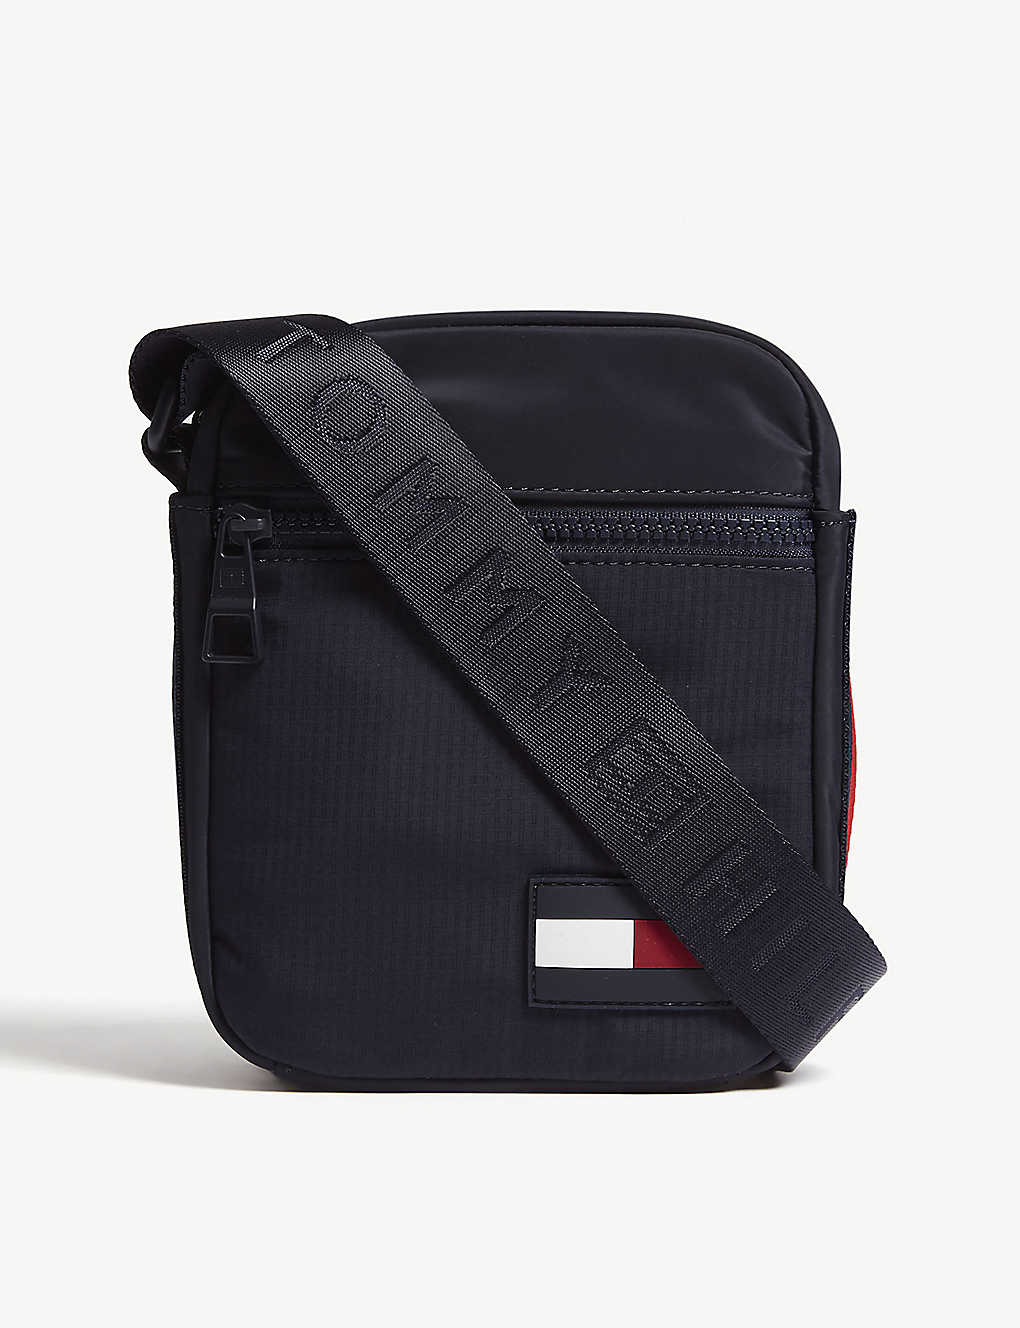 0720a06d08 TOMMY HILFIGER - Logo nylon messenger bag | Selfridges.com